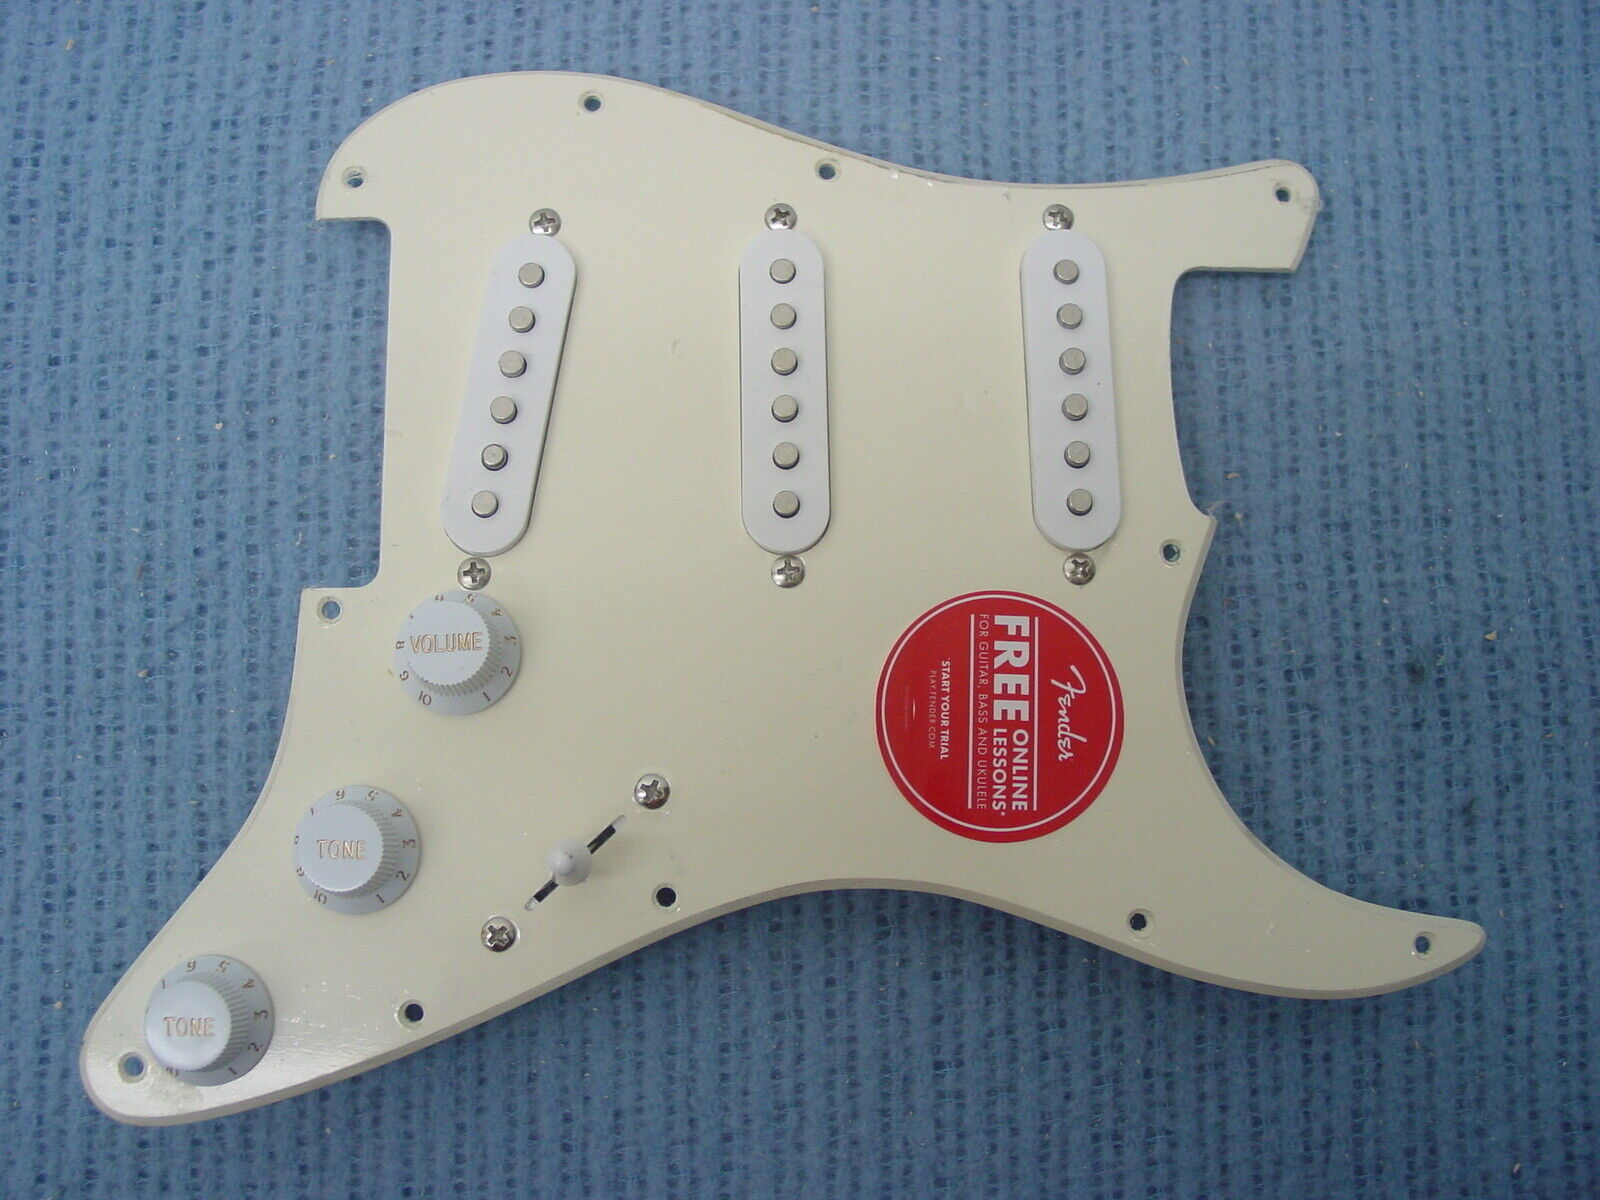 FENDER SQUIER STRAT SSS PICKUP SET LOADED AGED VINTAGE Weiß PICKGUARD CREME